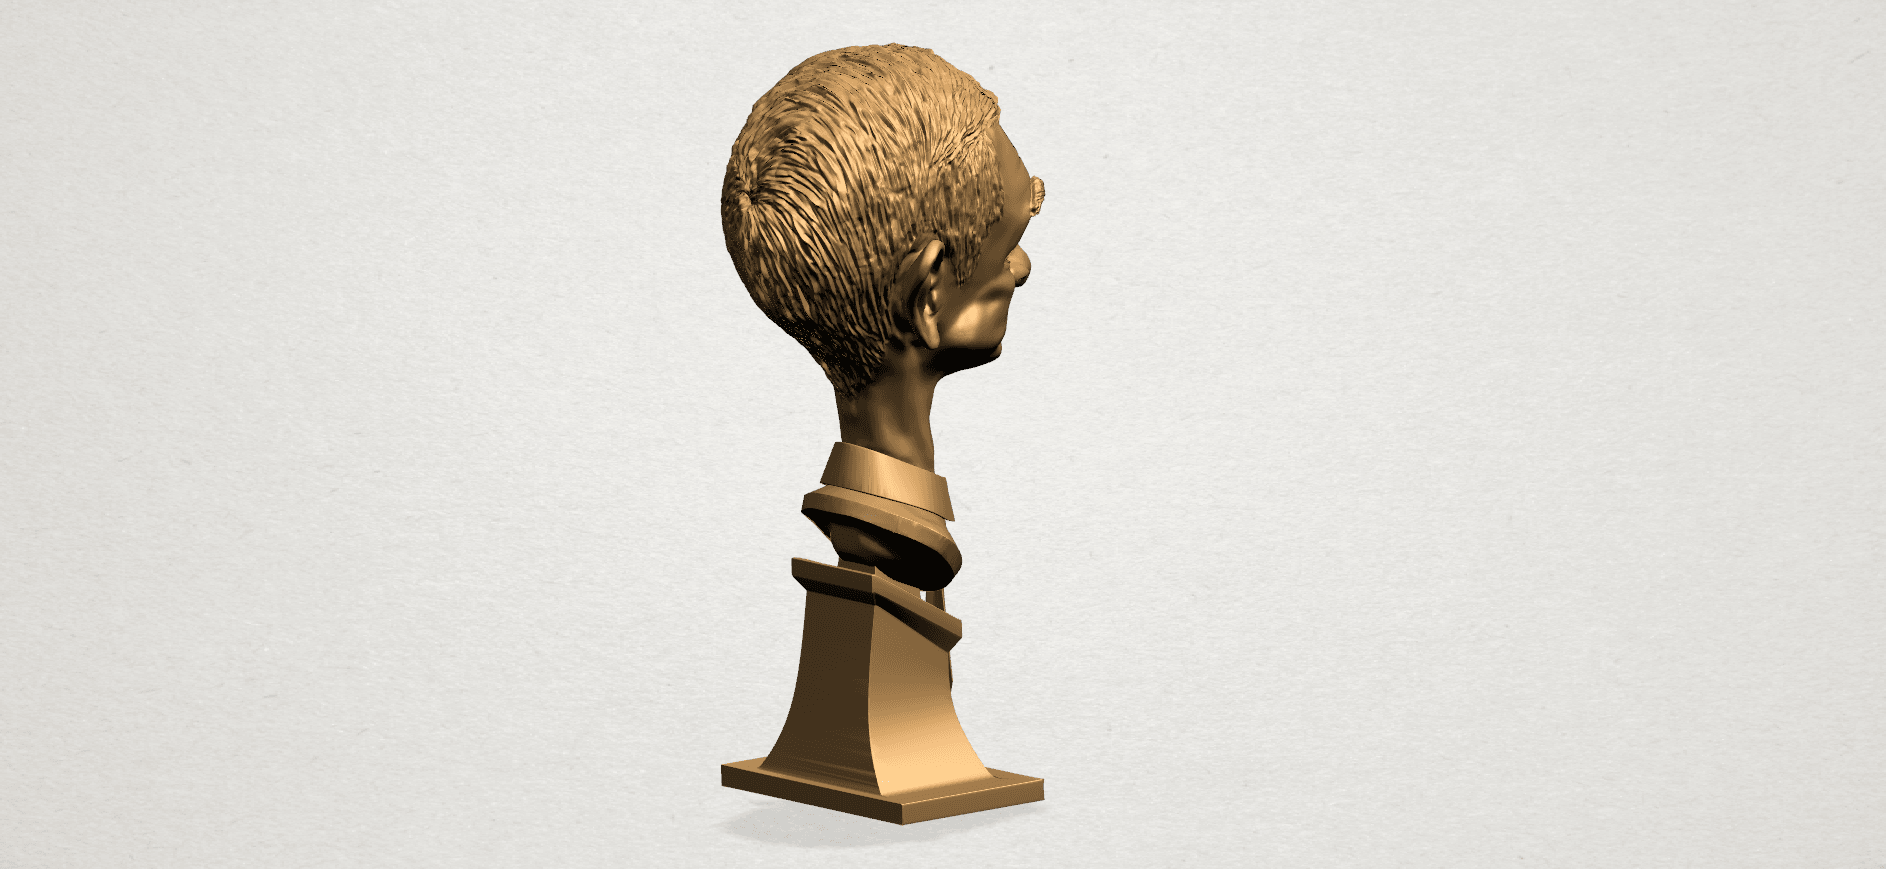 Sculpture of a man - B04.png Download free STL file Sculpture of a man 01 • 3D printable object, GeorgesNikkei